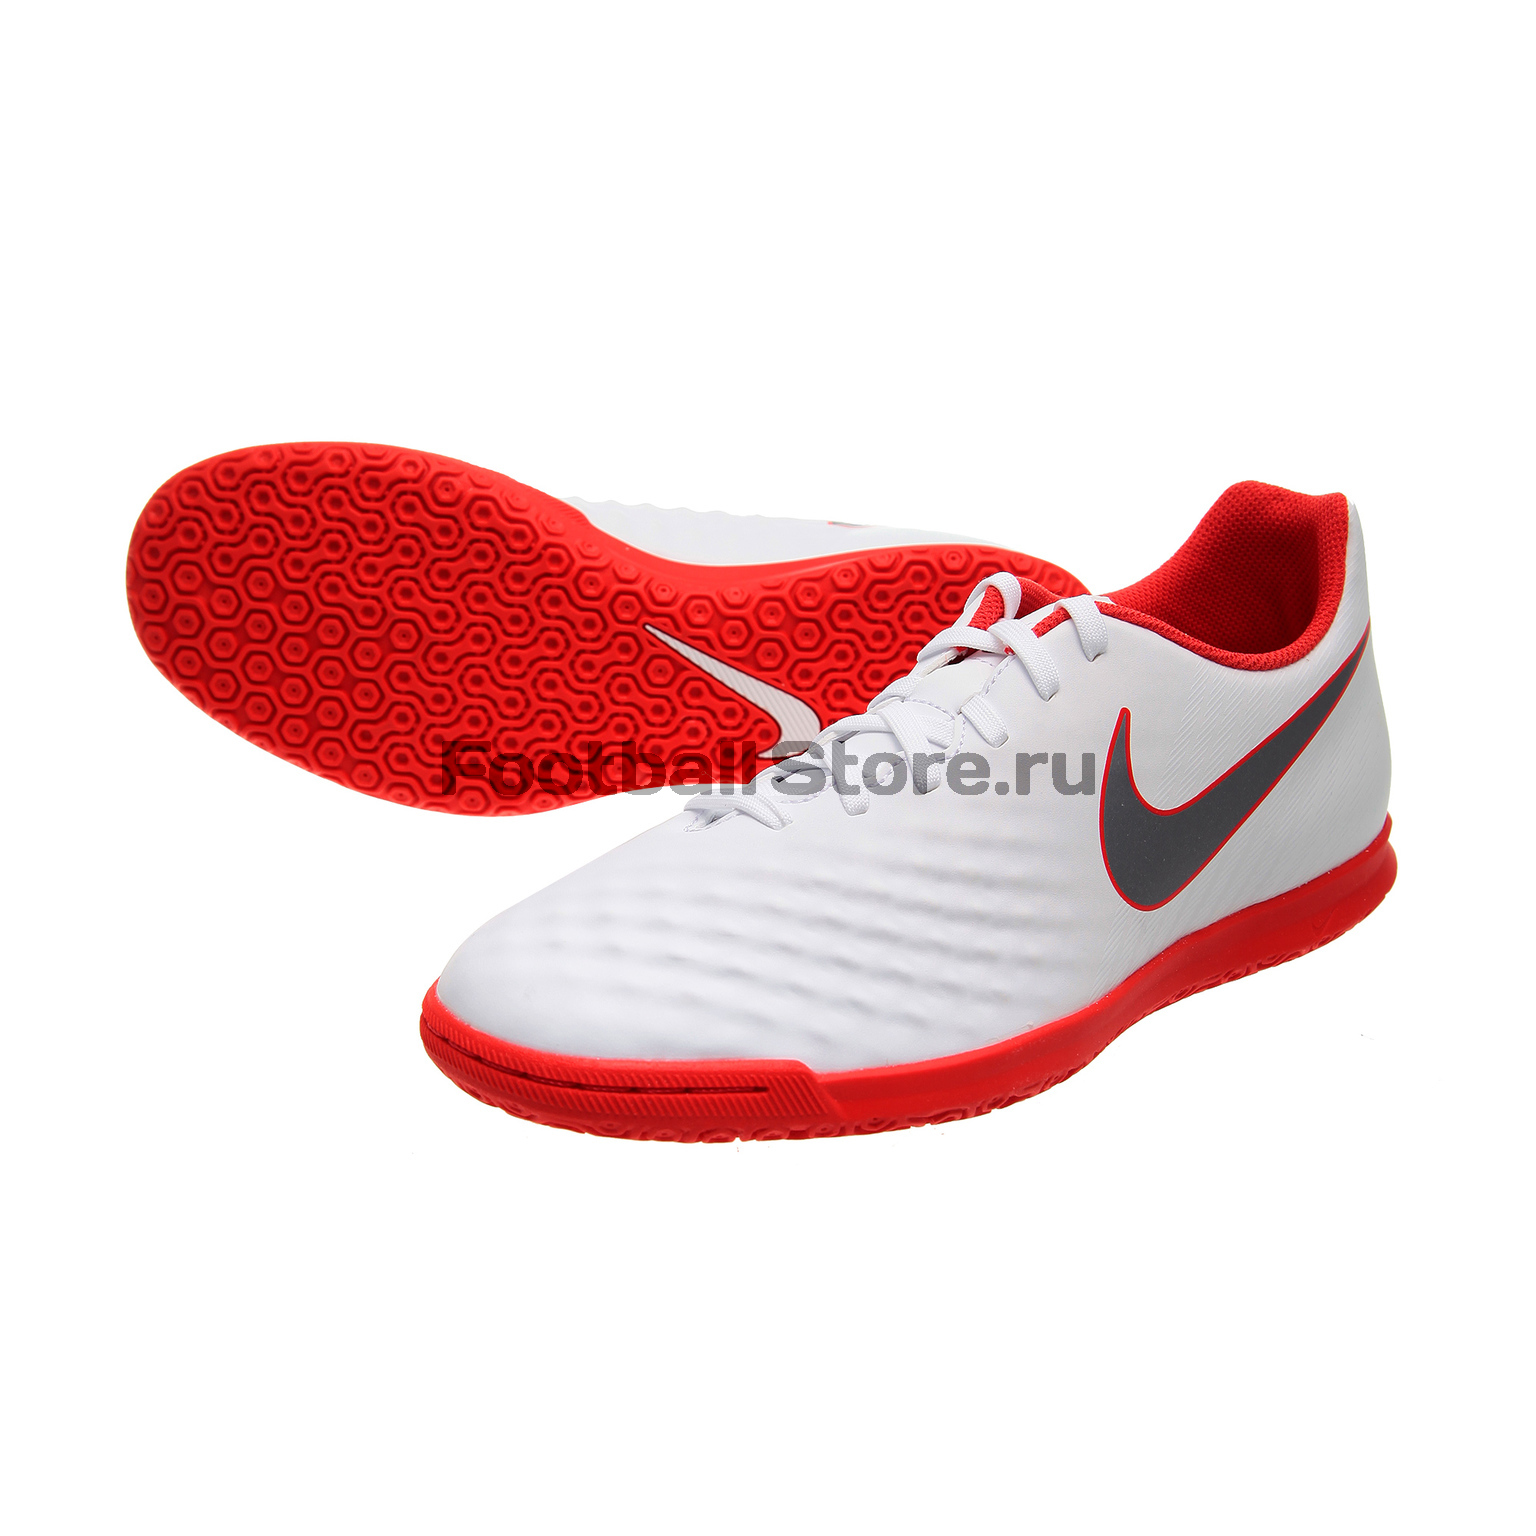 Обувь для зала Nike Obra 2 Club IC AH7310-107